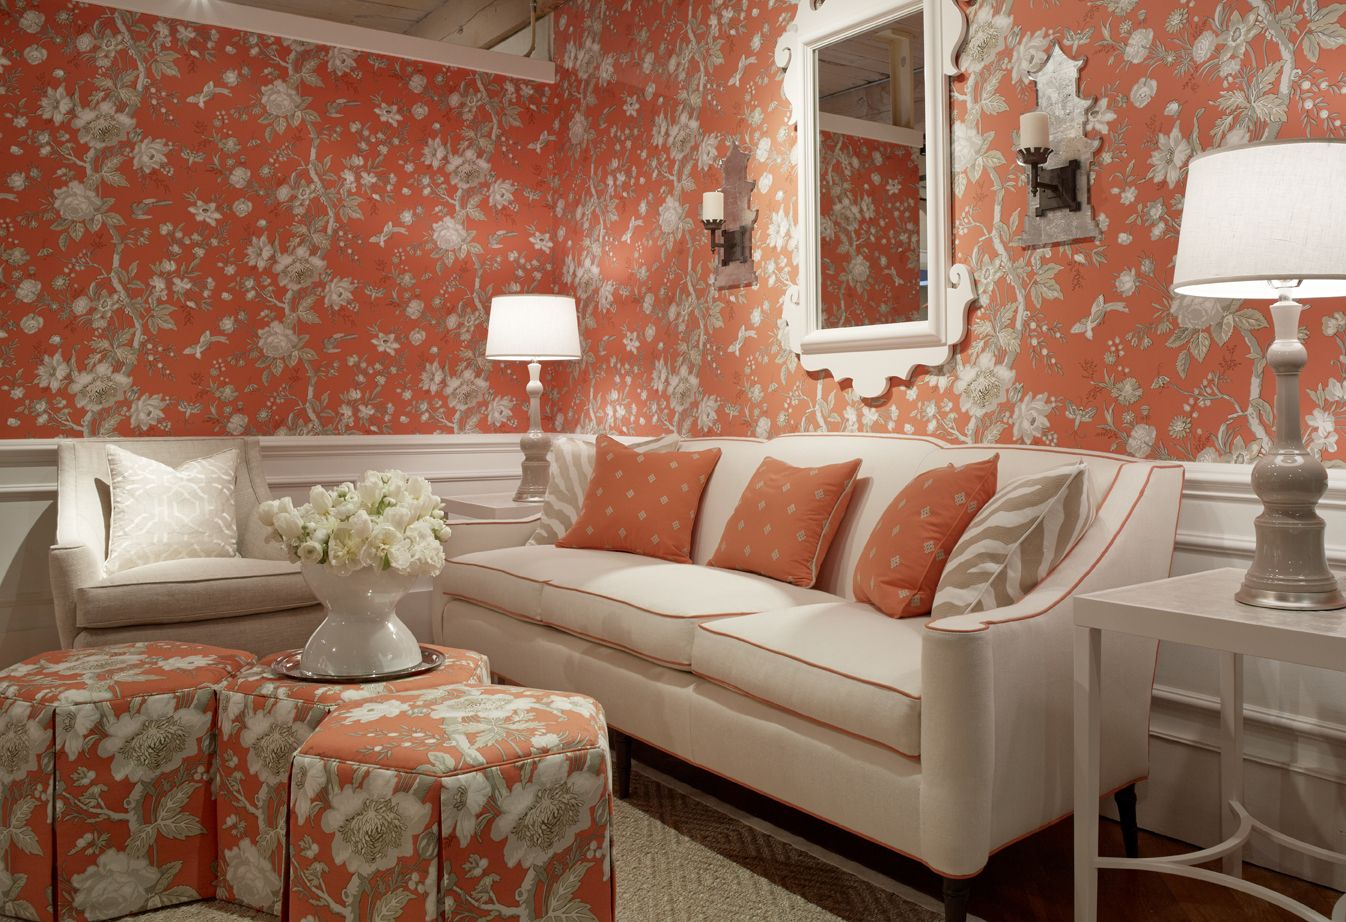 Perfect Thibaut Fine Furniture Showroom In High Point, Located At #315 Historic  Market Square.